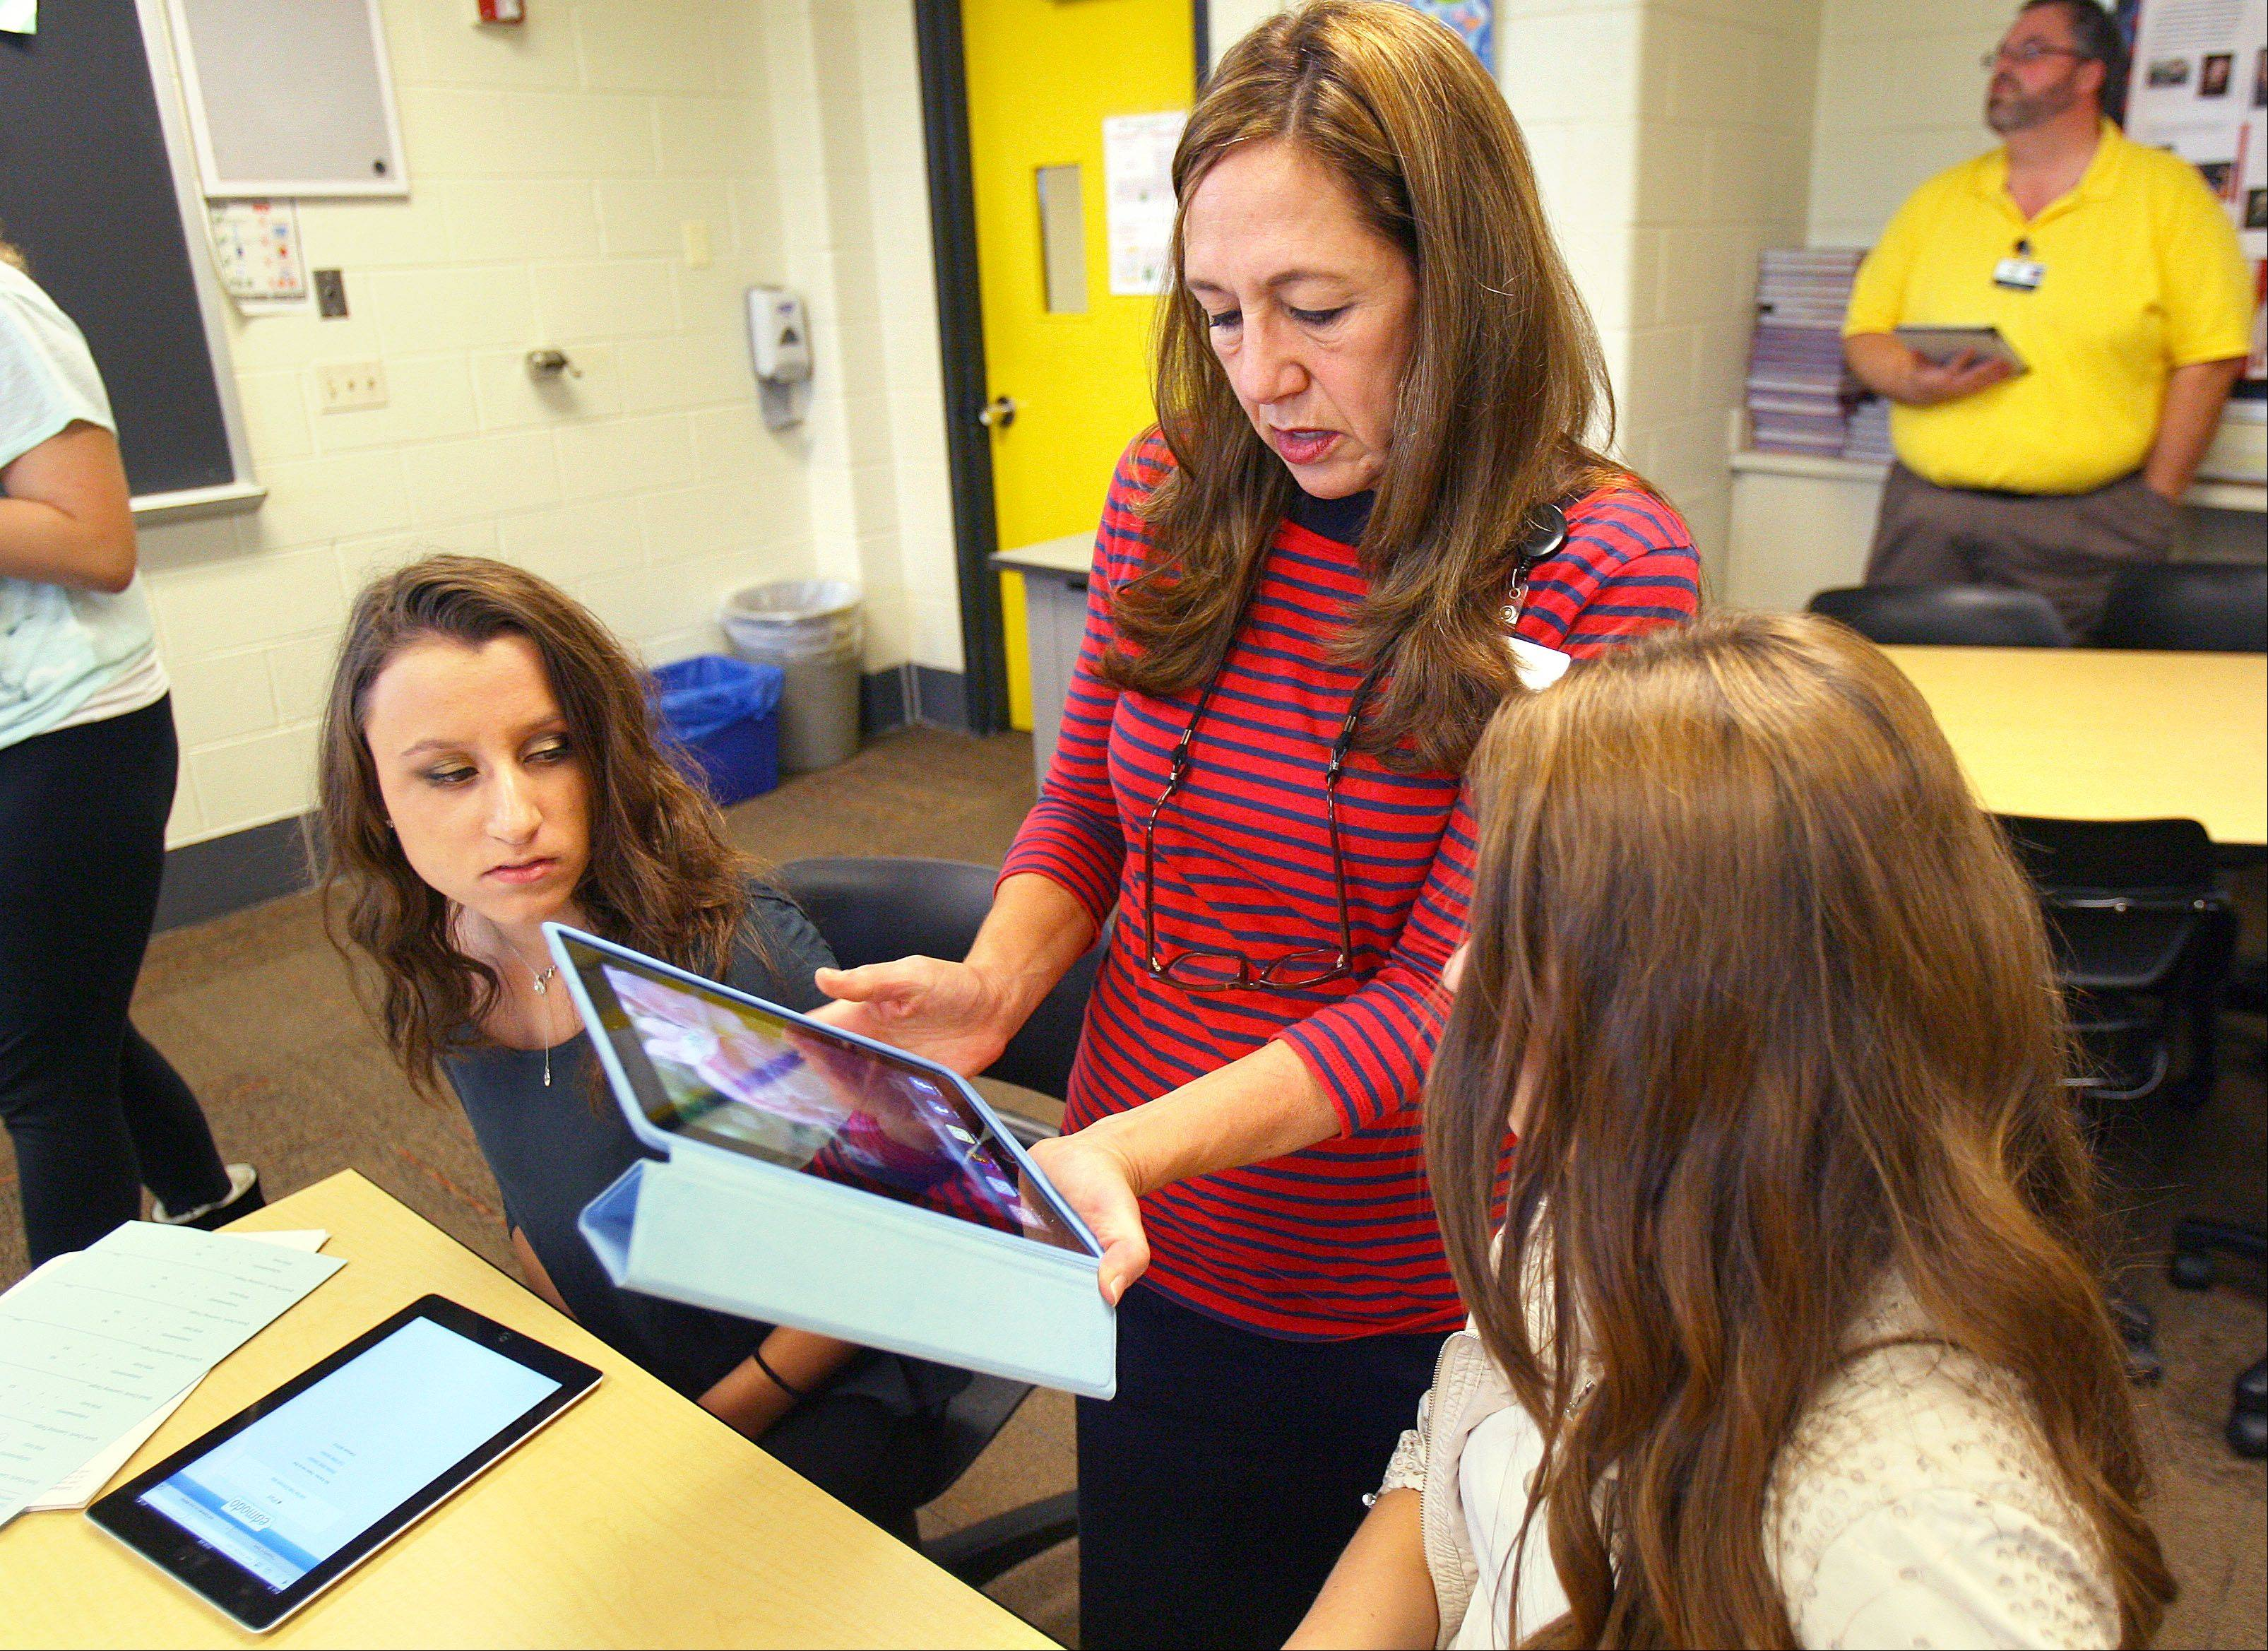 Spanish 2 teacher Lori Polin-Silva, middle, helps students Jessica Ascher, left, and Isabella Milejczyk with their iPads during class at Stevenson High School in Lincolnshire.